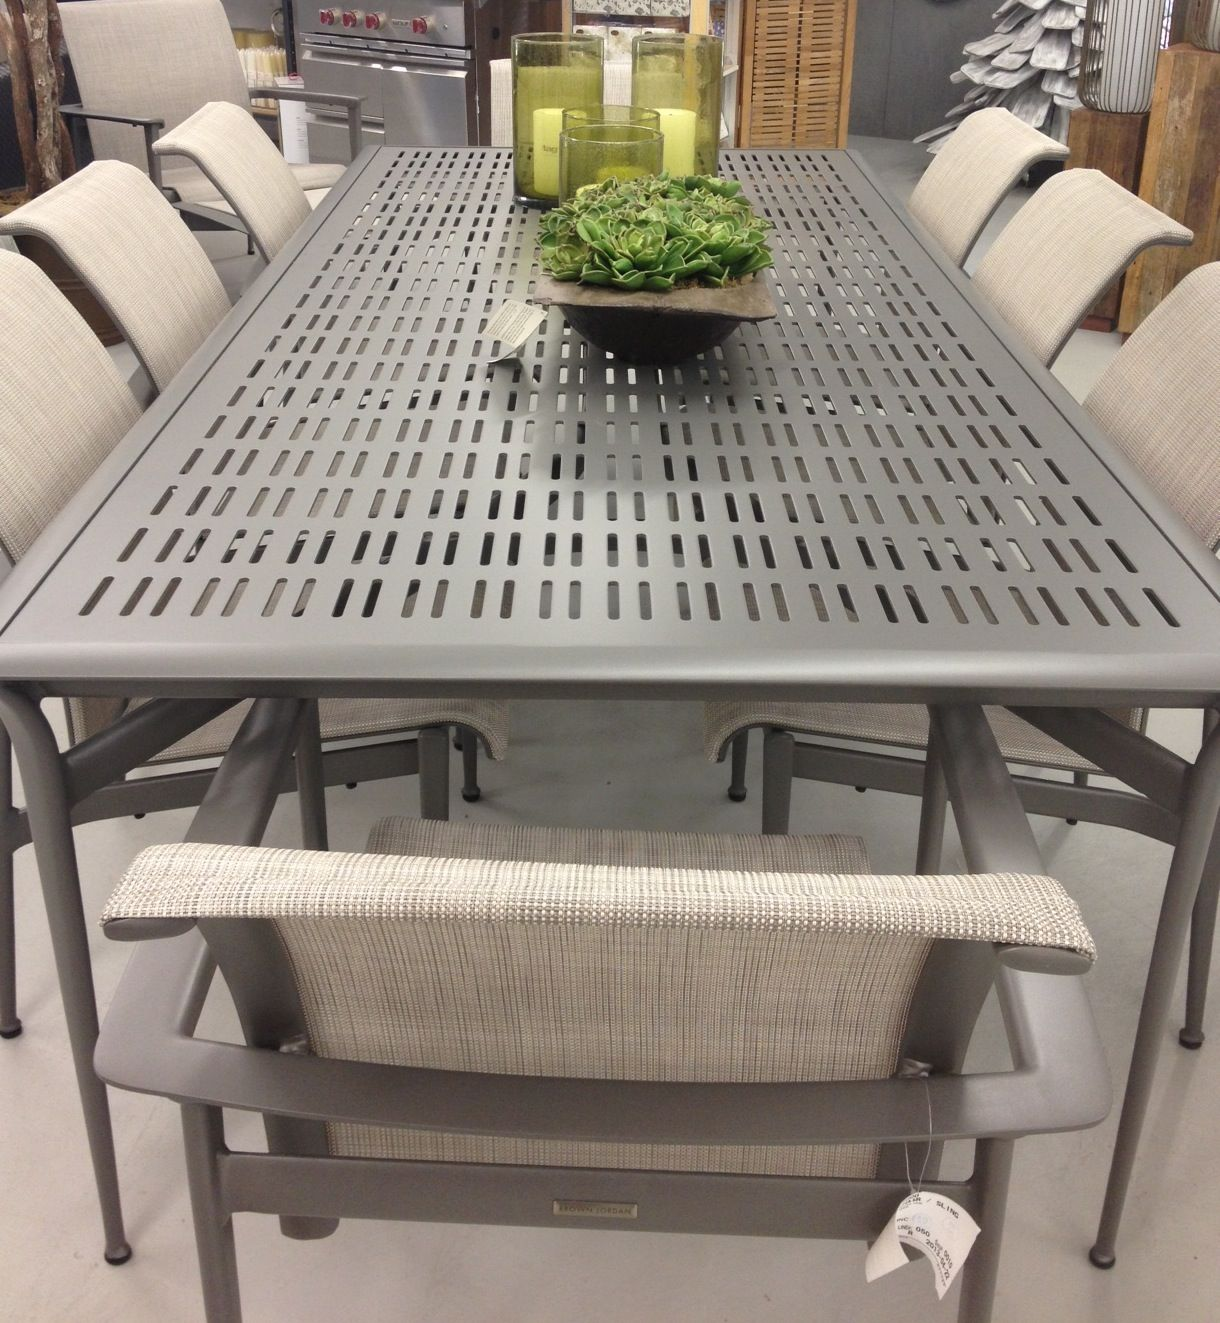 Flight By Brown Jordan Aluminum Table With Sling Chairs Outdoor Furniture Sets Outdoor Tables And Chairs Aluminum Table